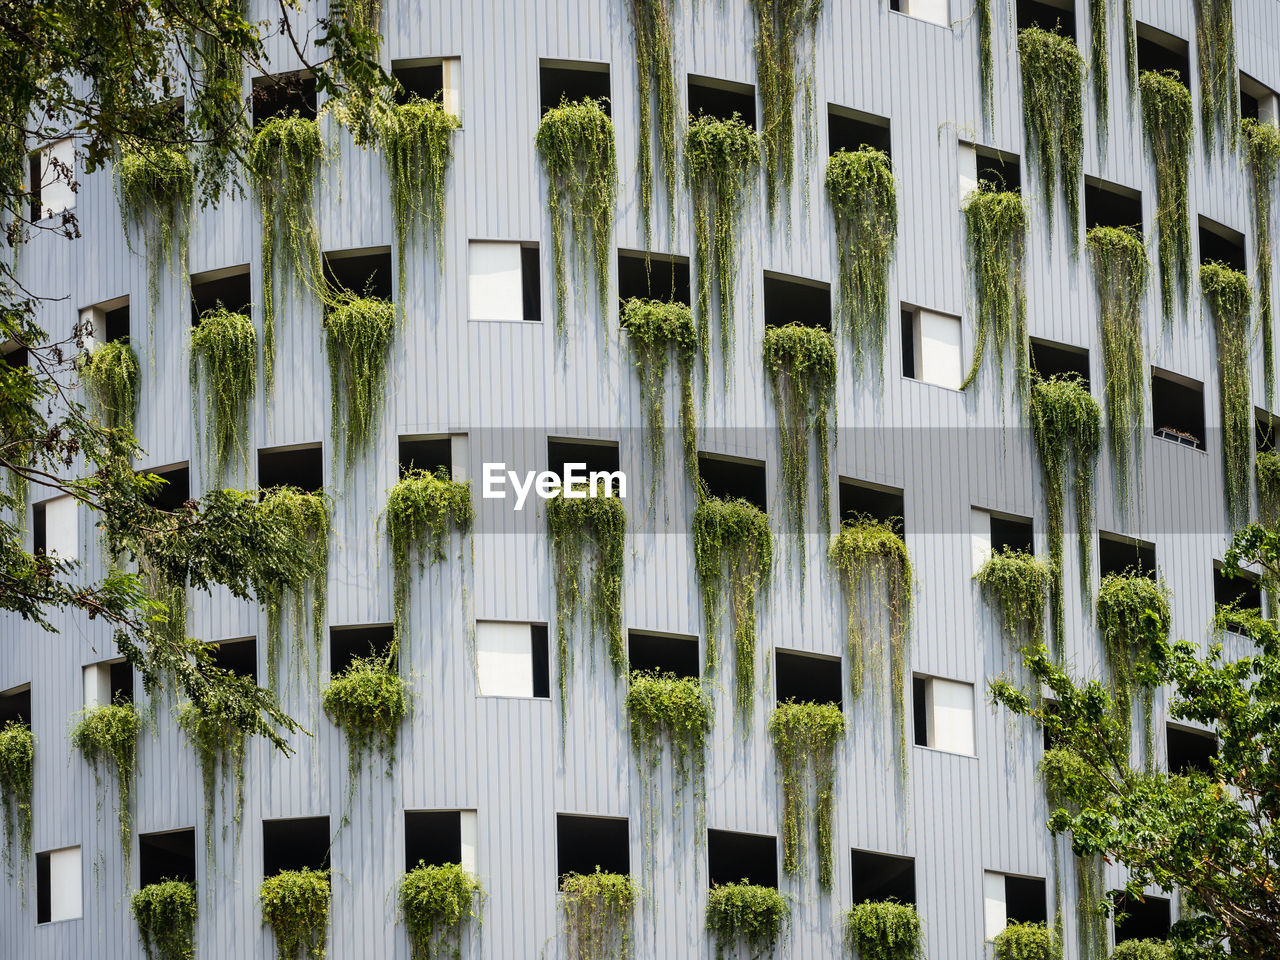 architecture, building exterior, built structure, plant, window, building, day, no people, residential district, growth, outdoors, nature, in a row, full frame, tree, city, repetition, low angle view, side by side, ivy